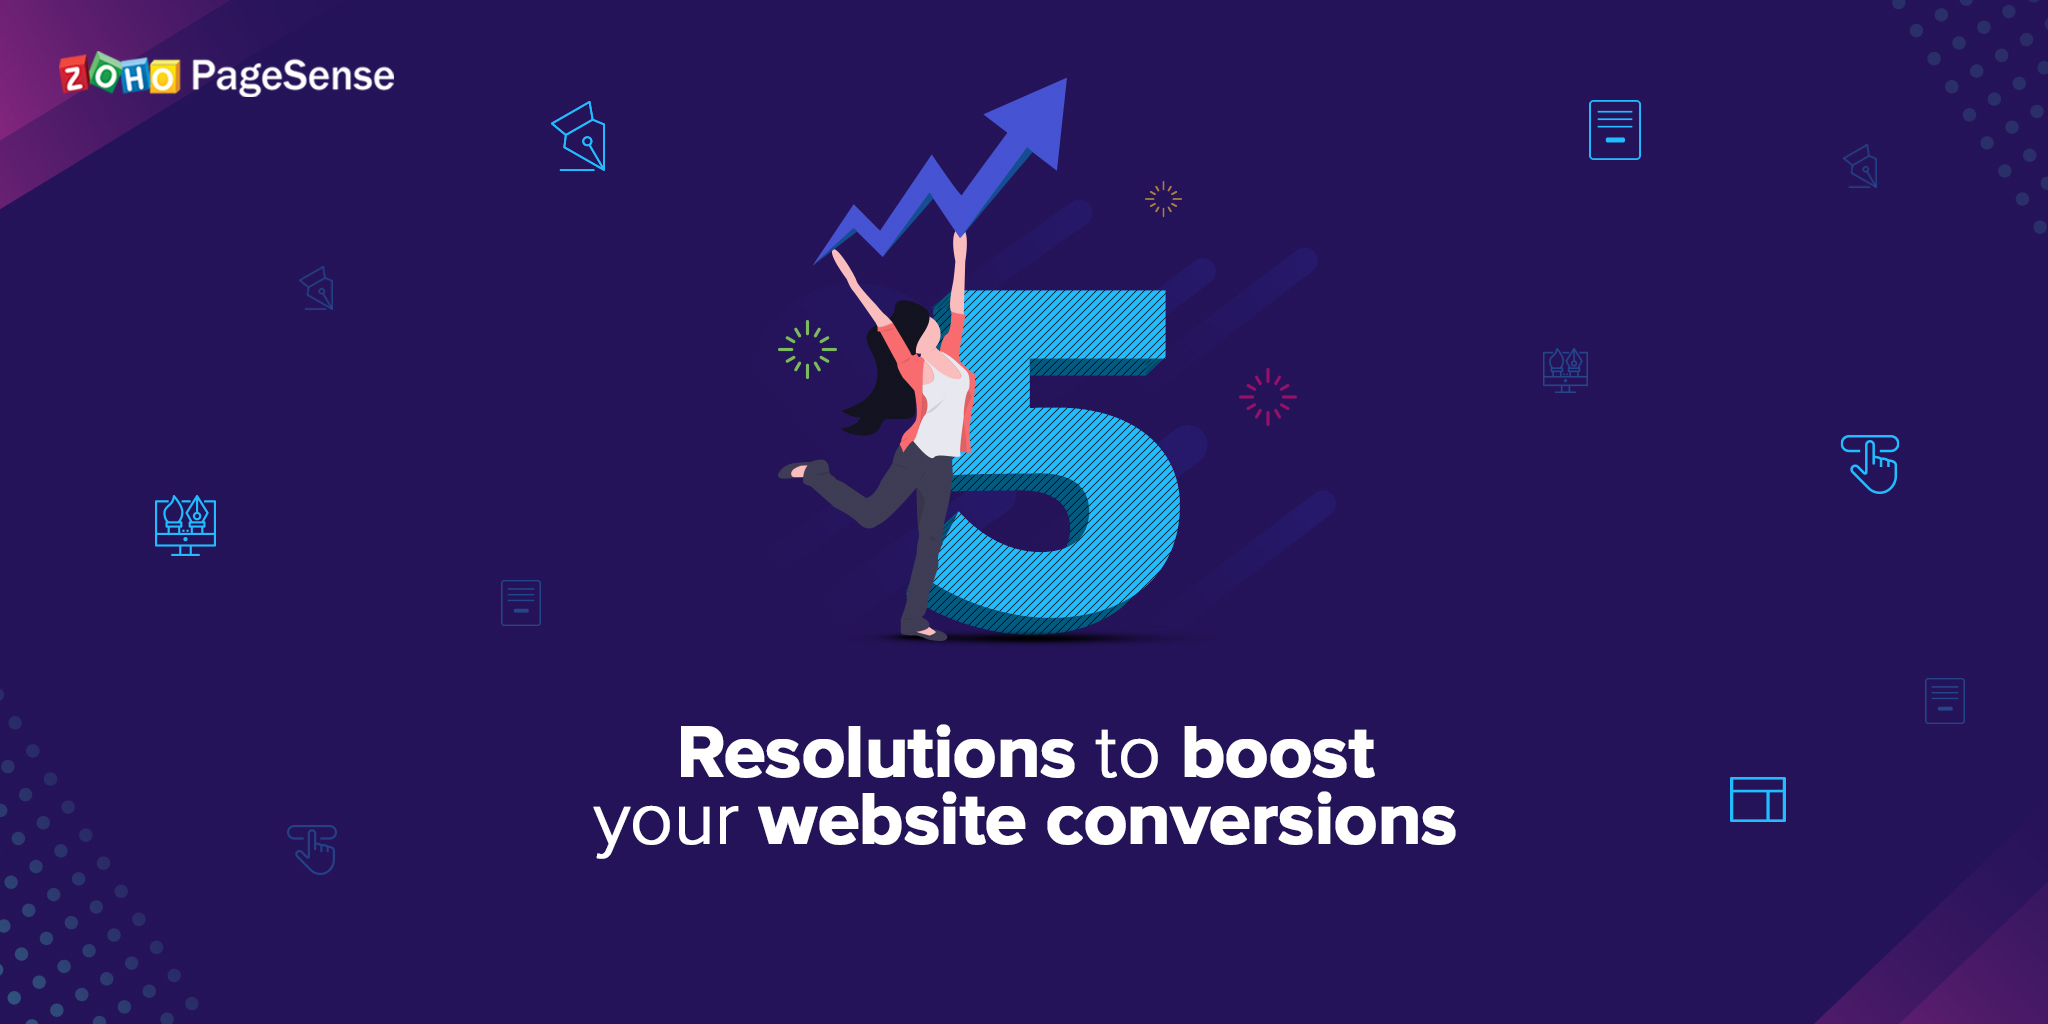 5 ways to boost your website conversions